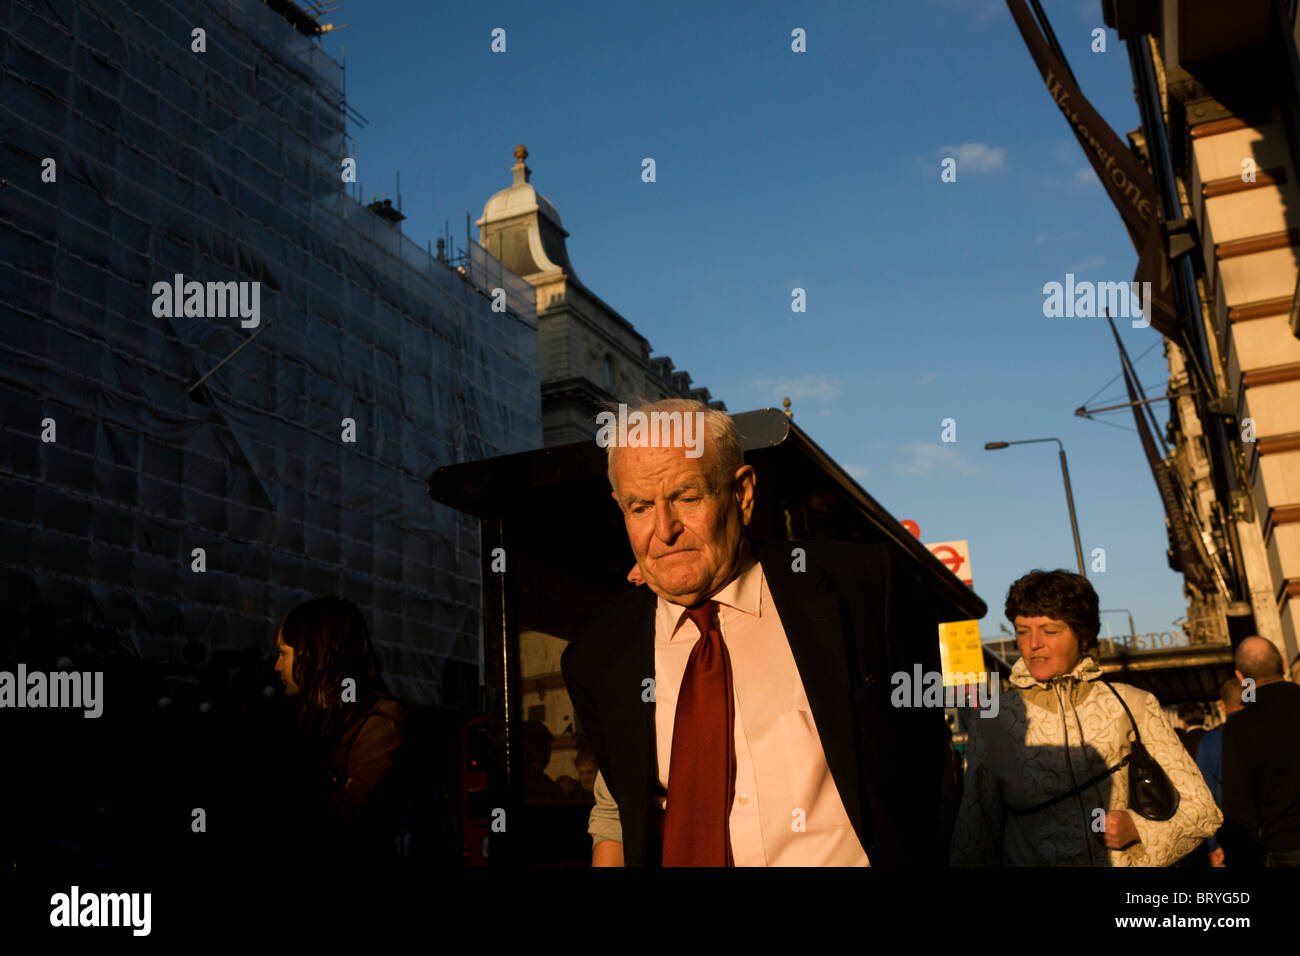 Elderly man walks slowly along Piccadilly in late afternoon sunshine. - Stock Image